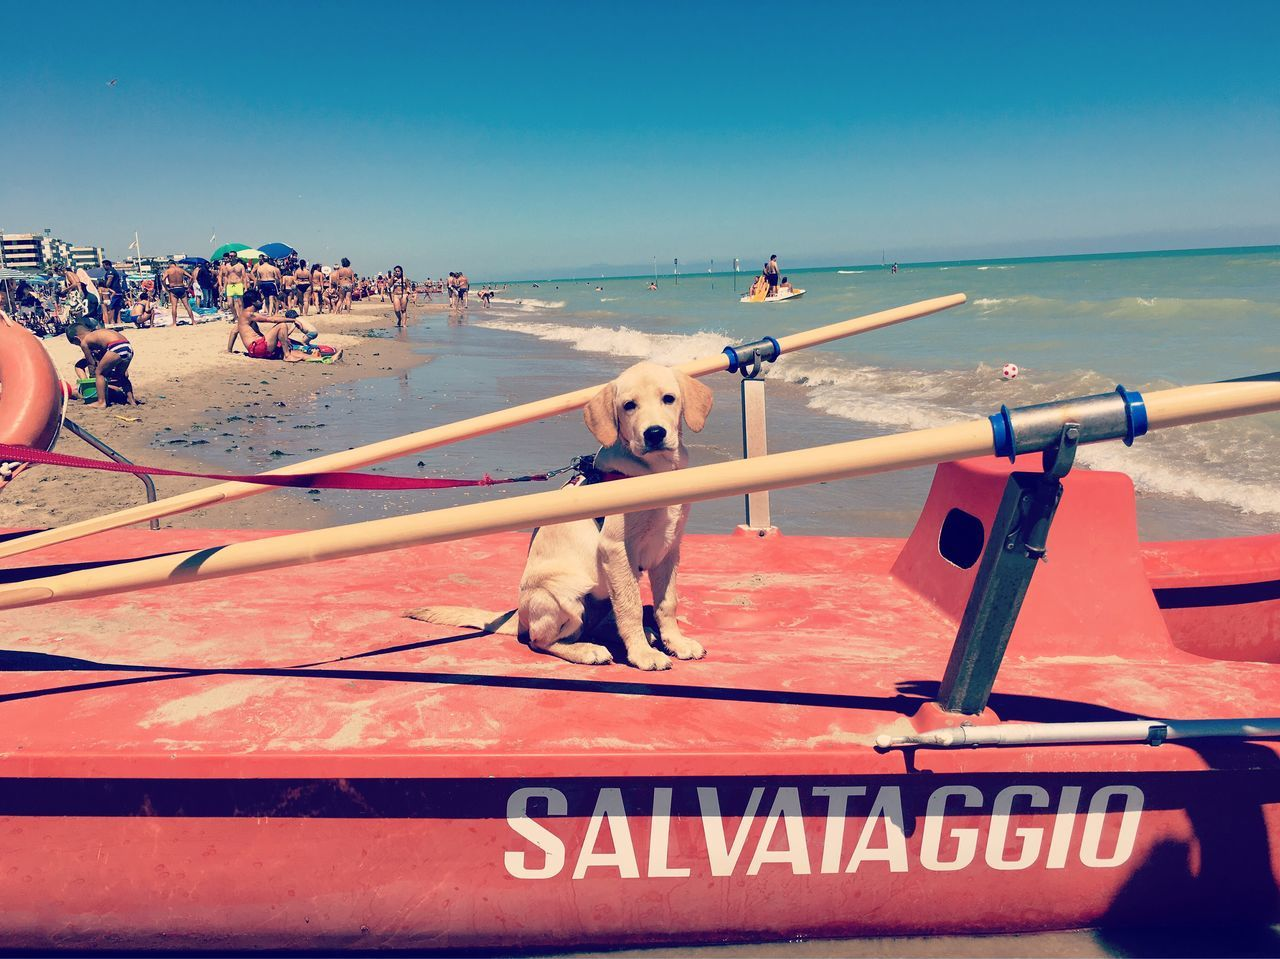 domestic animals, mammal, animal themes, outdoors, dog, one animal, sea, large group of people, pets, clear sky, day, beach, nature, sky, water, real people, nautical vessel, people